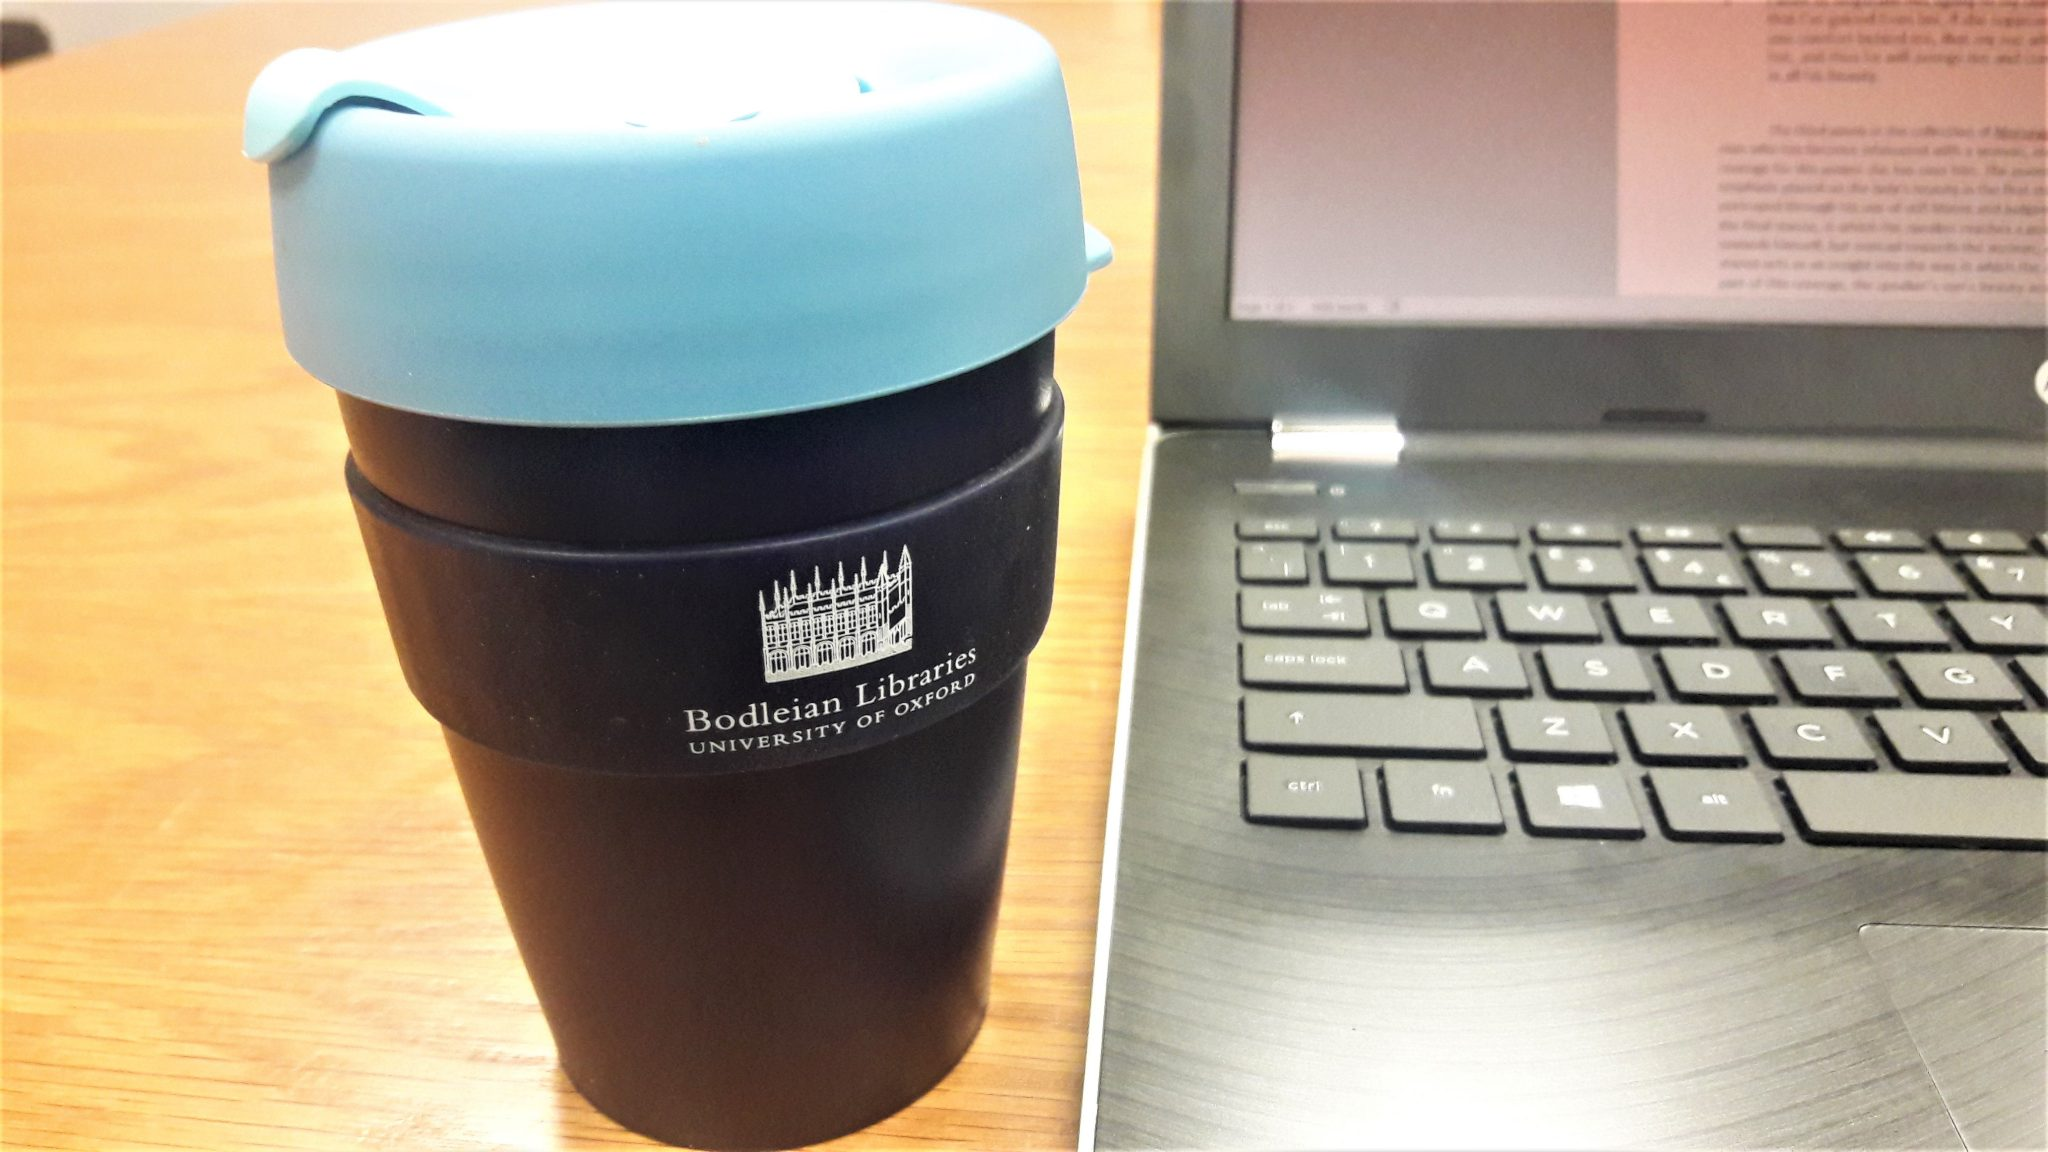 Are keepcups worth keeping?